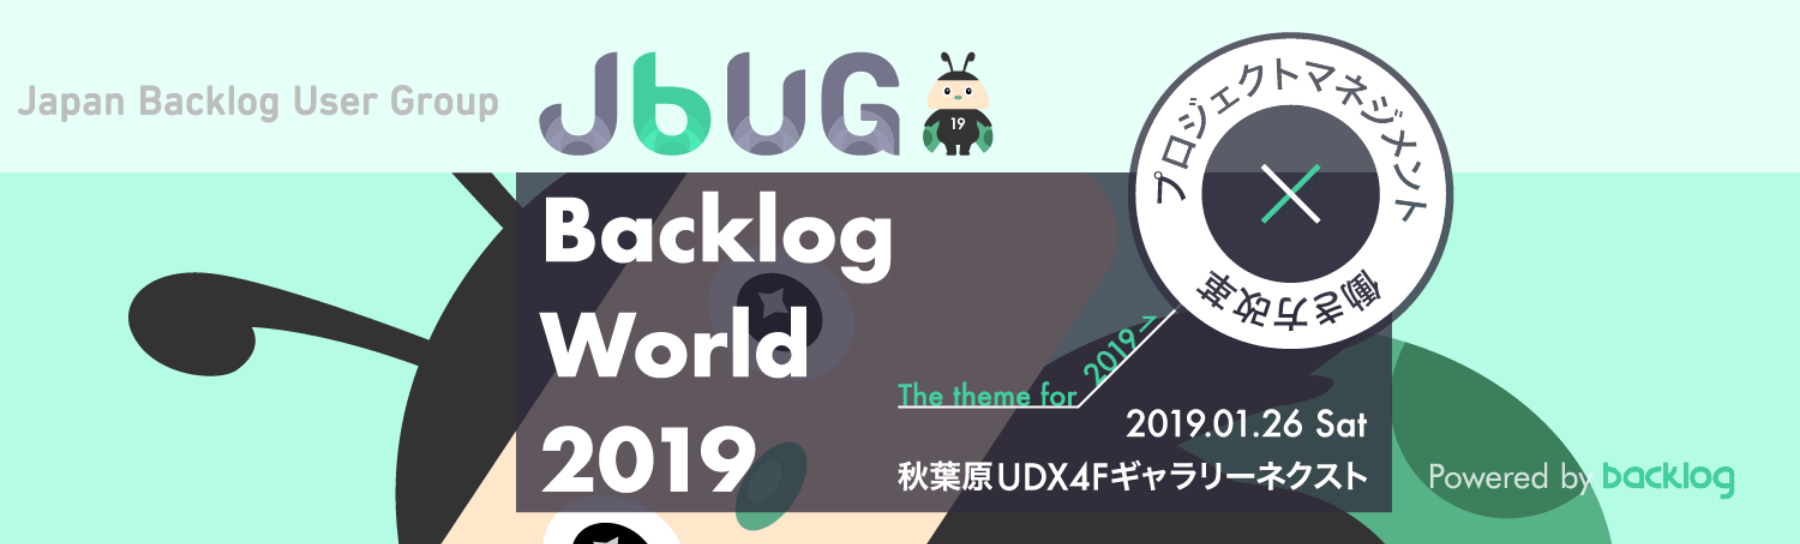 Backlog World 2019